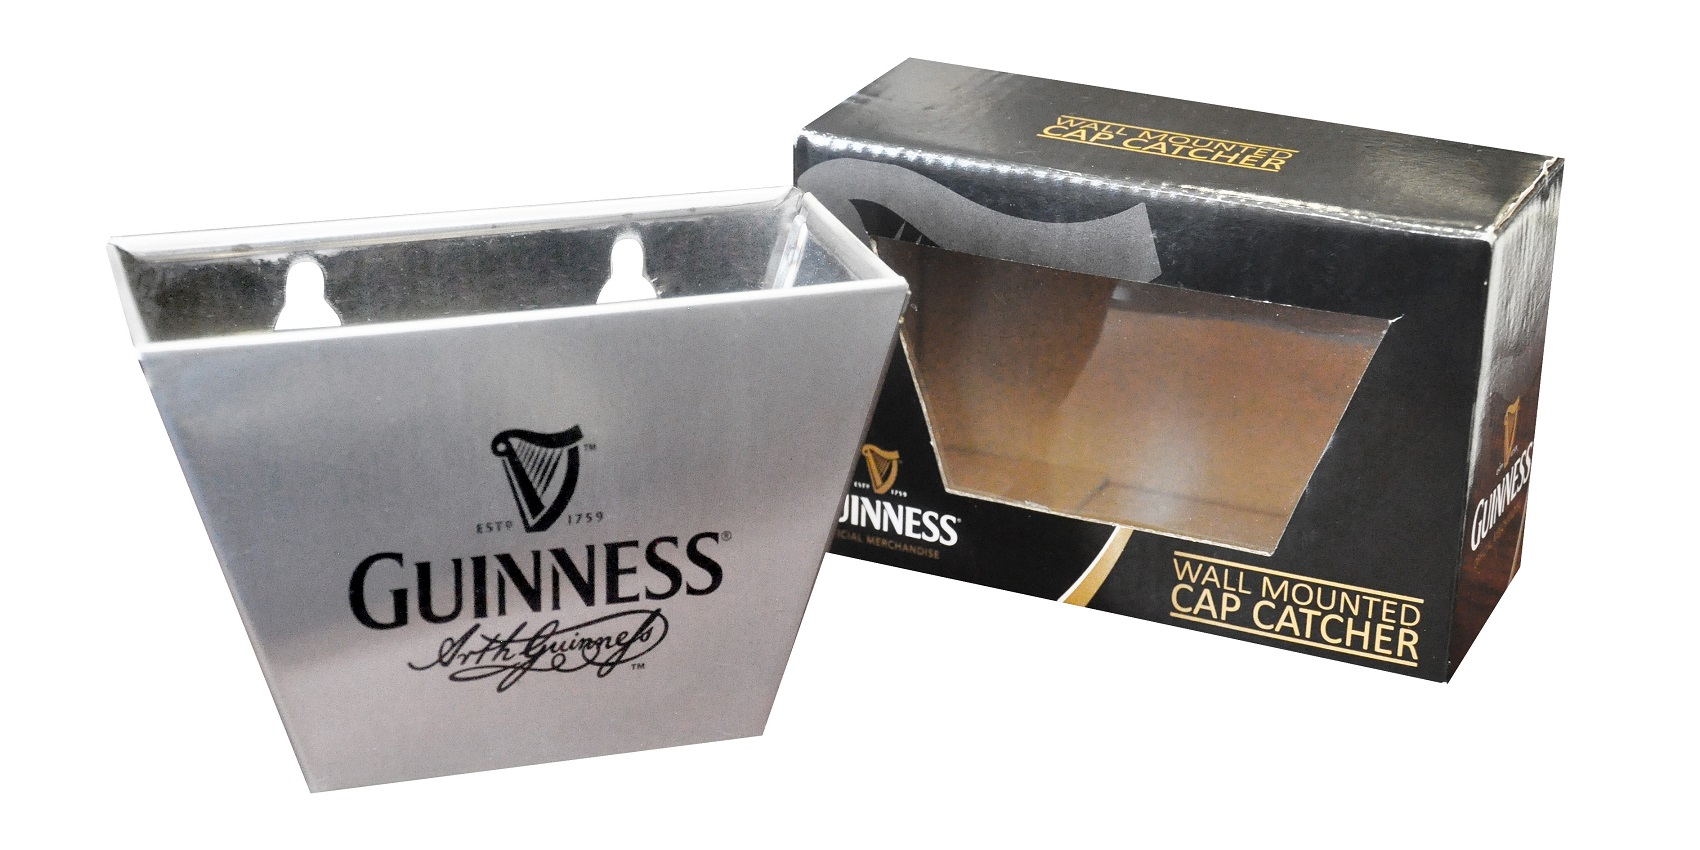 Guinness Signature Cap Catcher